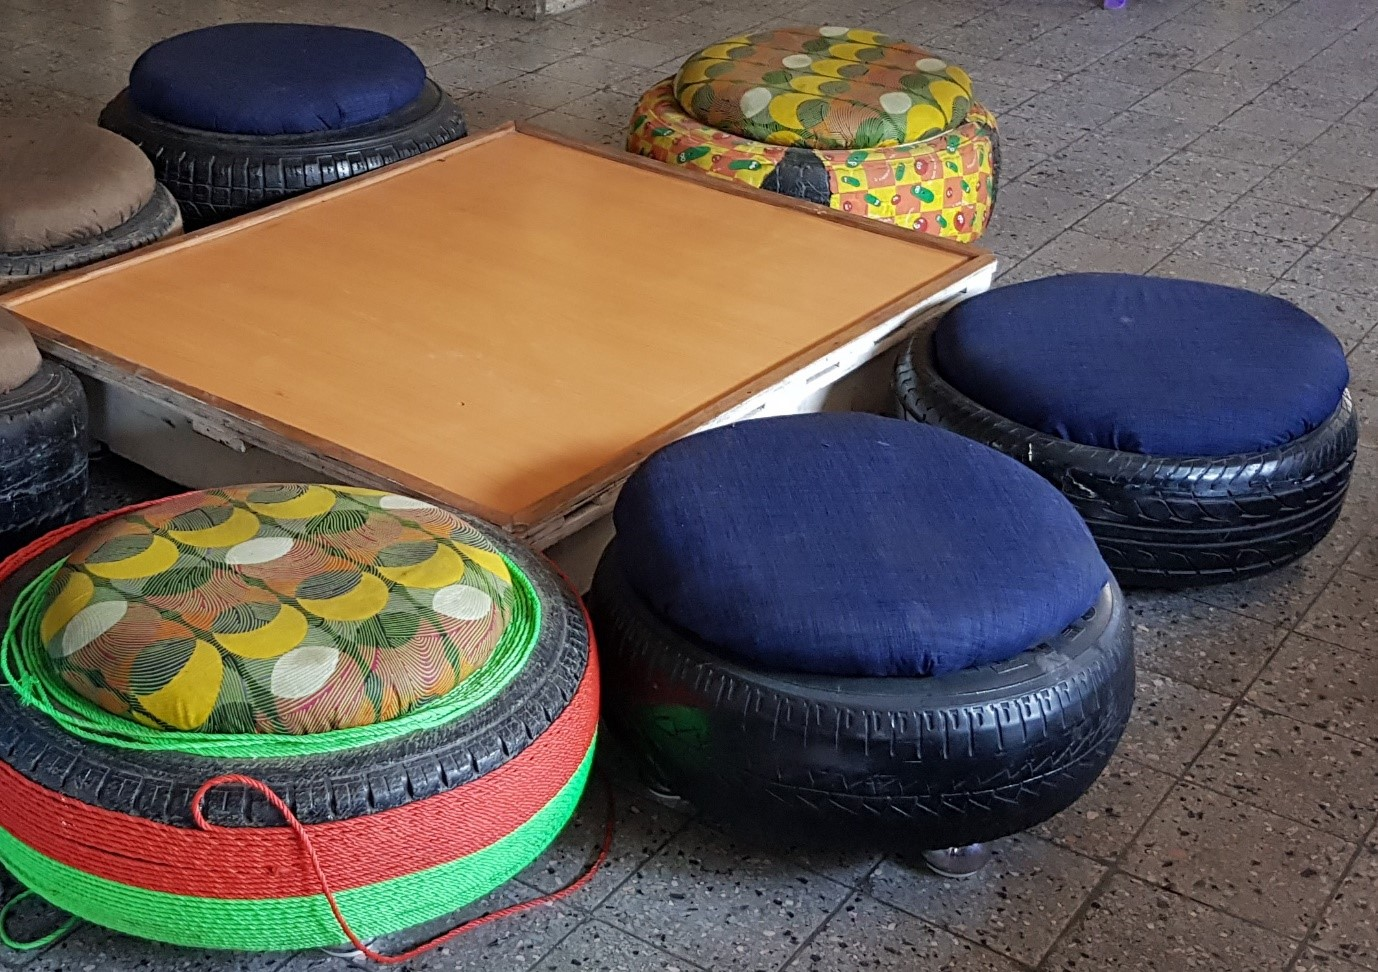 Seating area designed and made by the resident girls at Matumaini orphanage in Kinshasa, DRC, October 5, 2019 UN GLOBAL COMPACT NETWORK UK/Benafsha Delgado